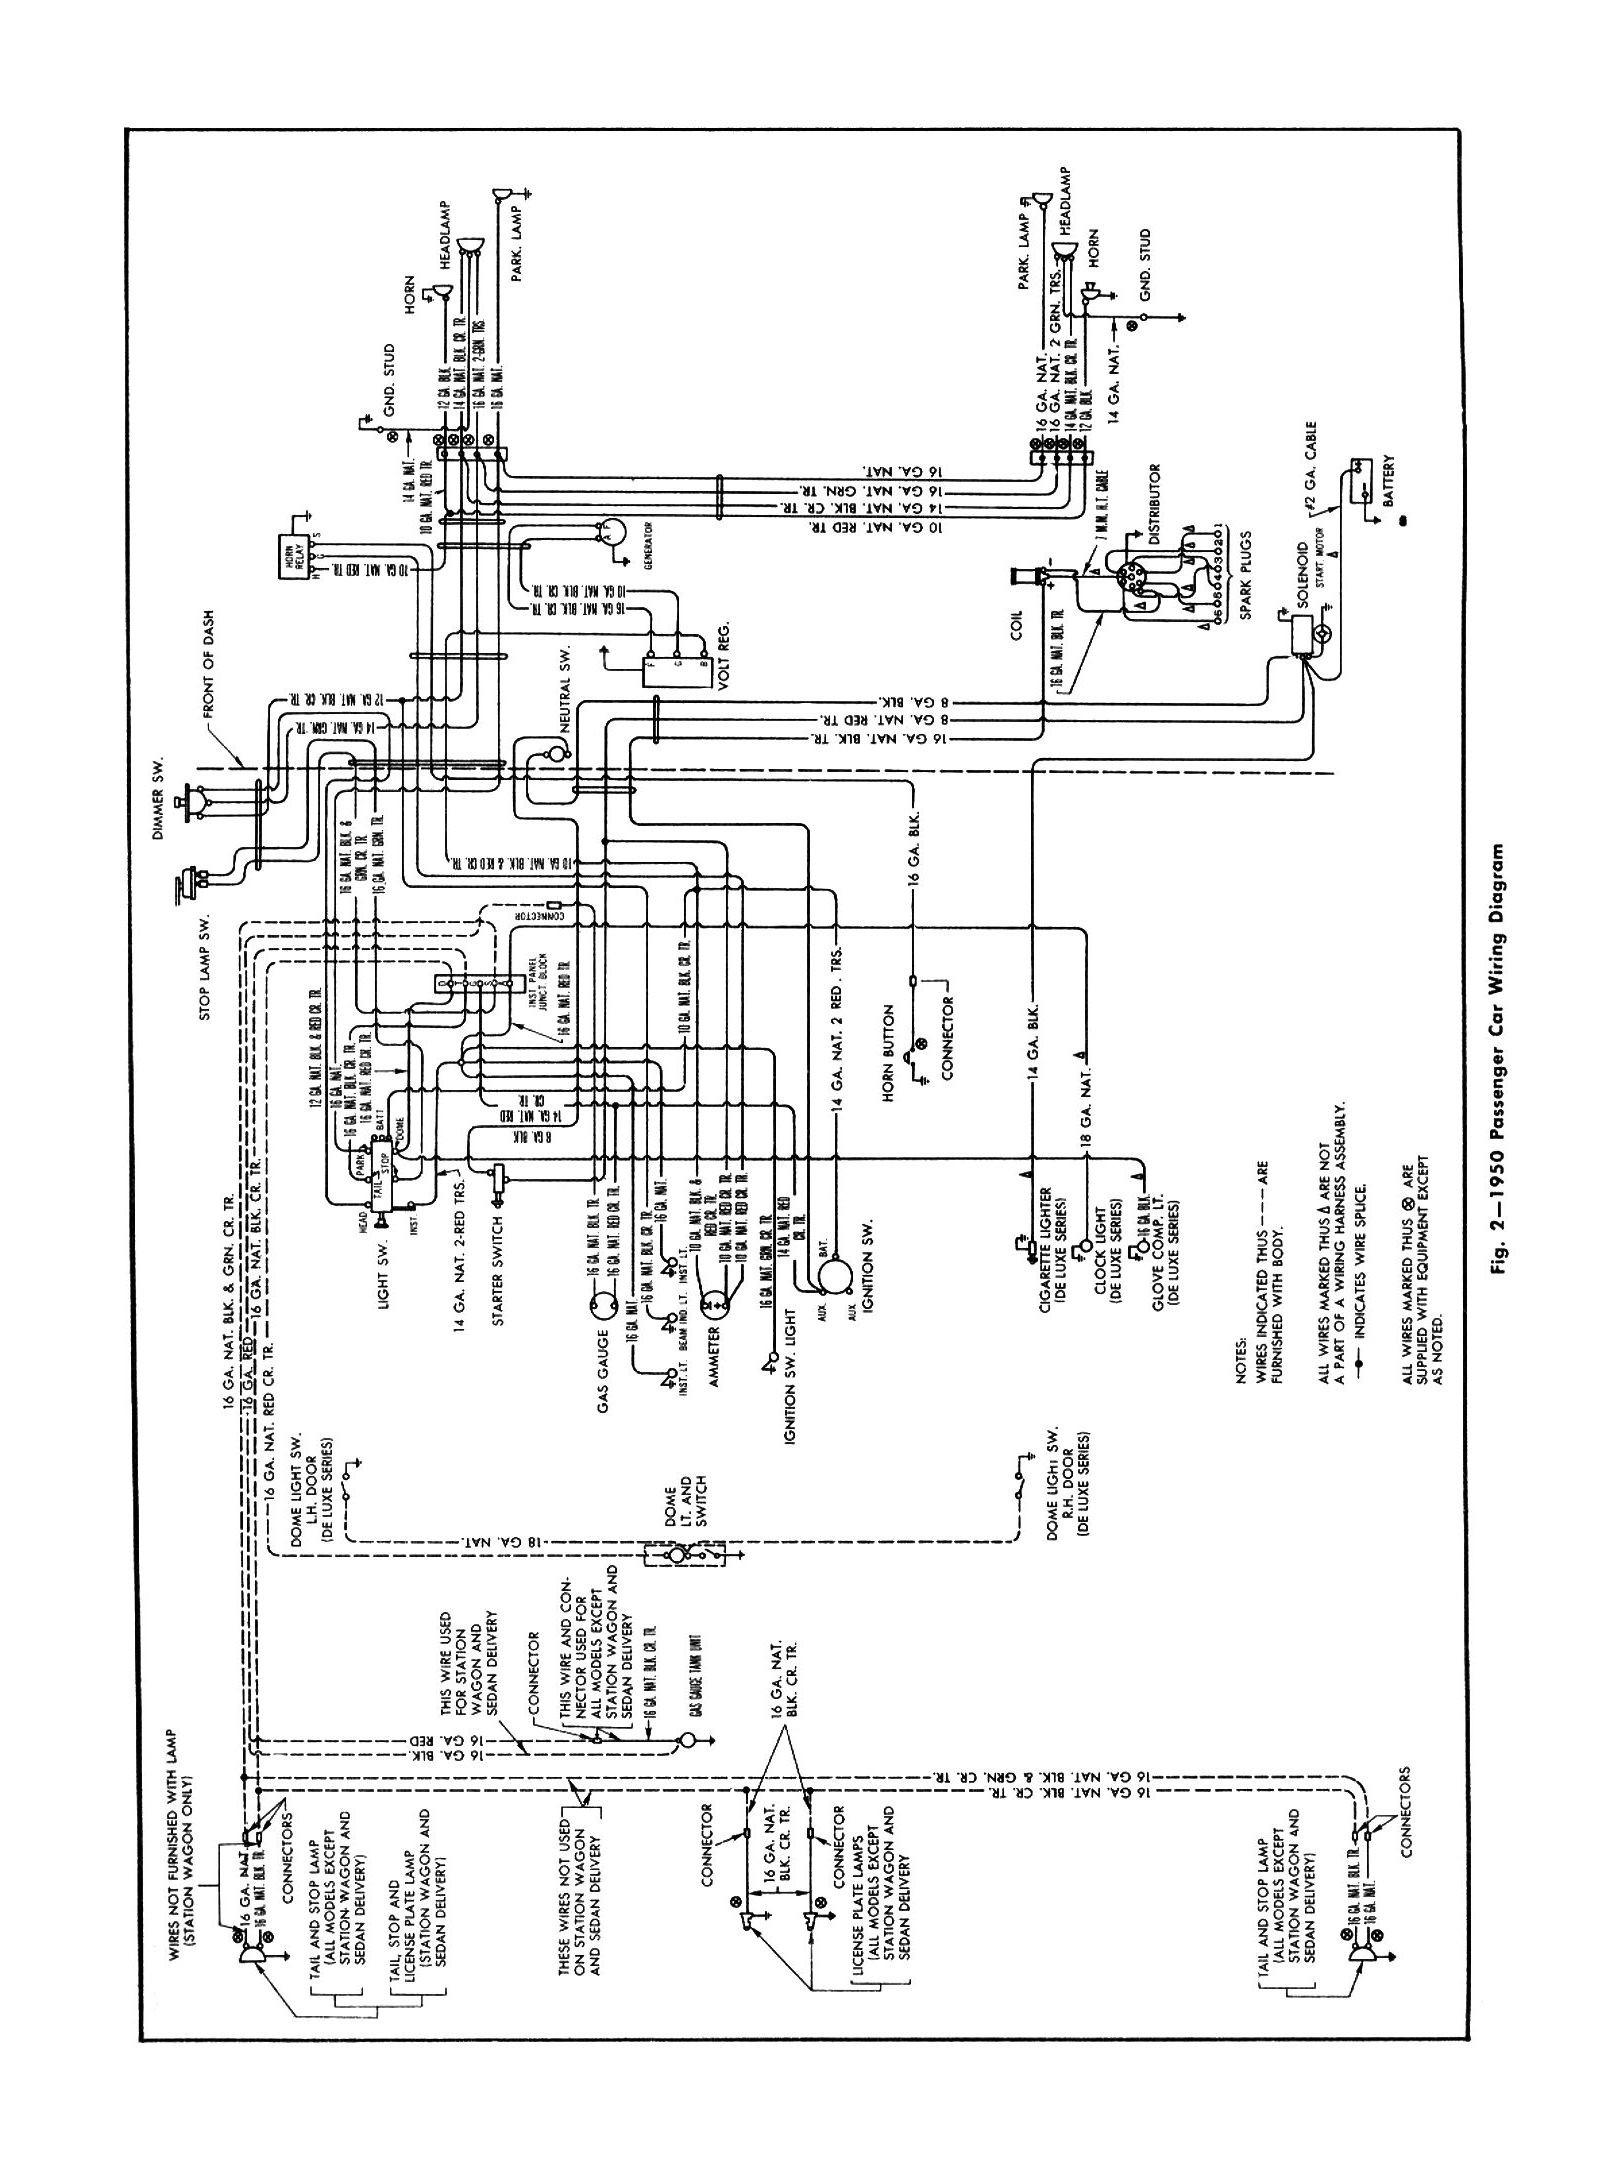 1949 Chevy Tail Lights Wiring Diagram Starting Know About Pontiac Harness Just Data Rh Ag Skiphire Co Uk